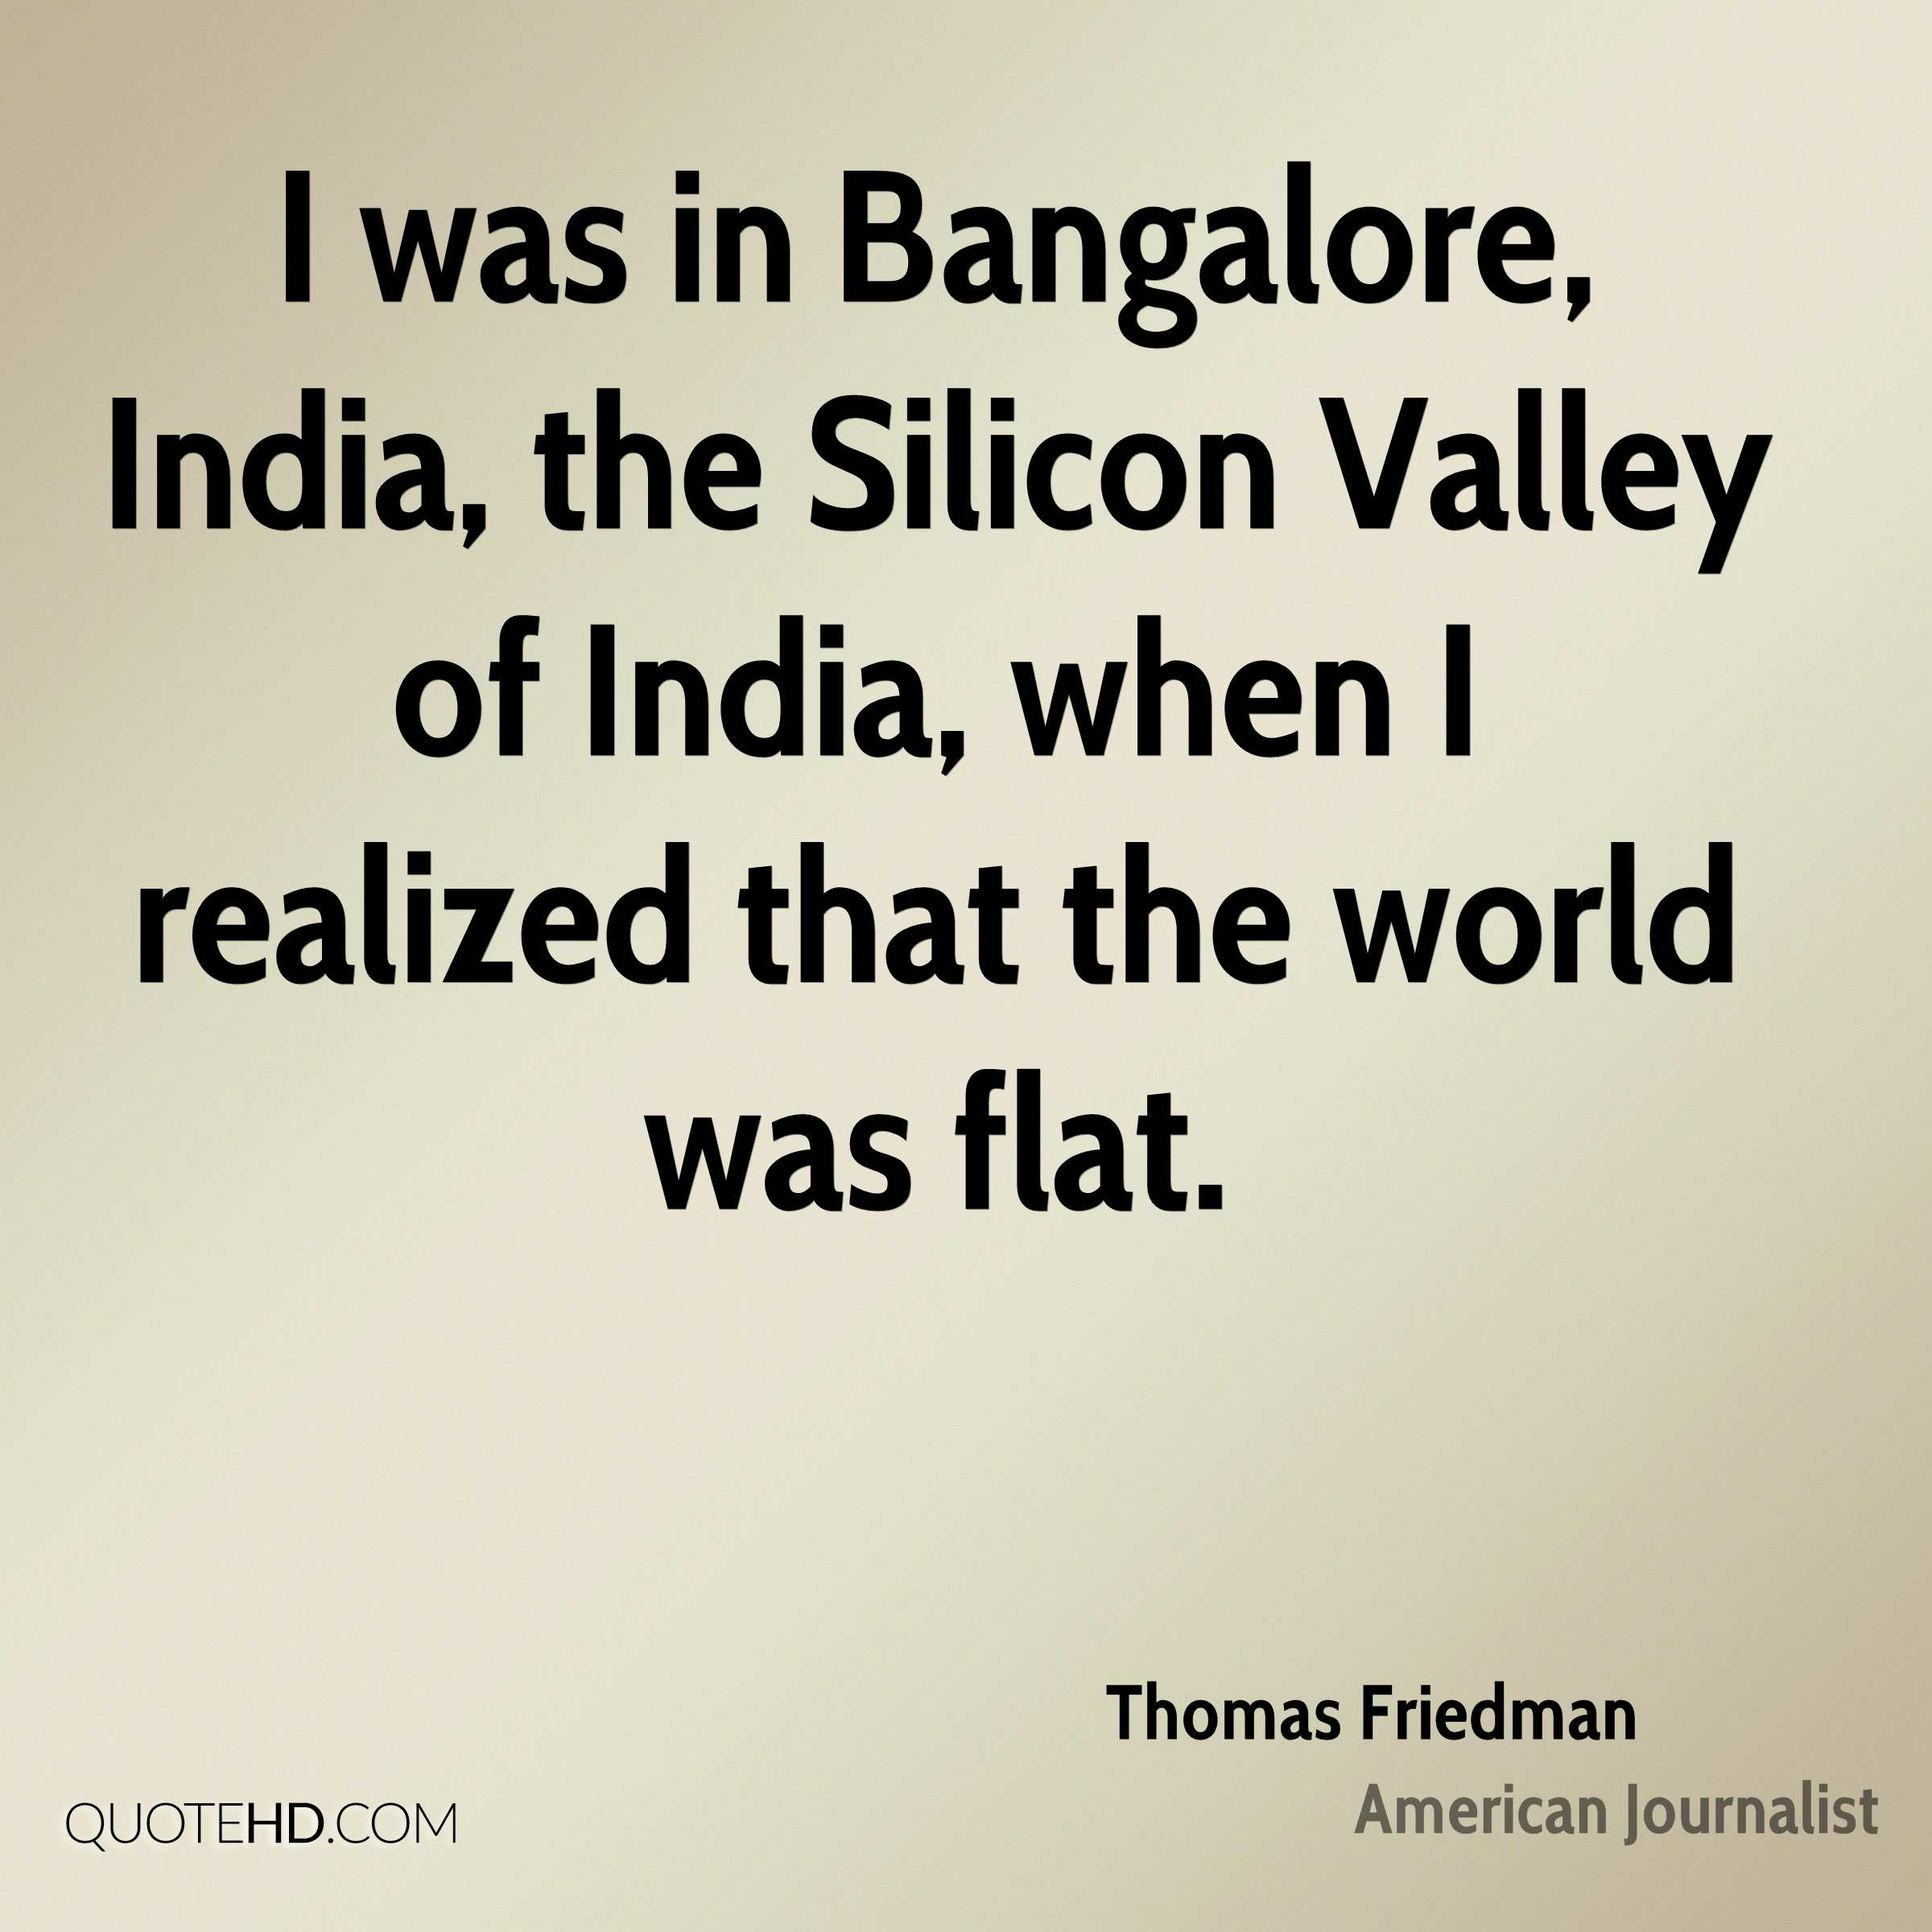 I was in Bangalore, India, the Silicon Valley of India, when I realized that the world was flat.